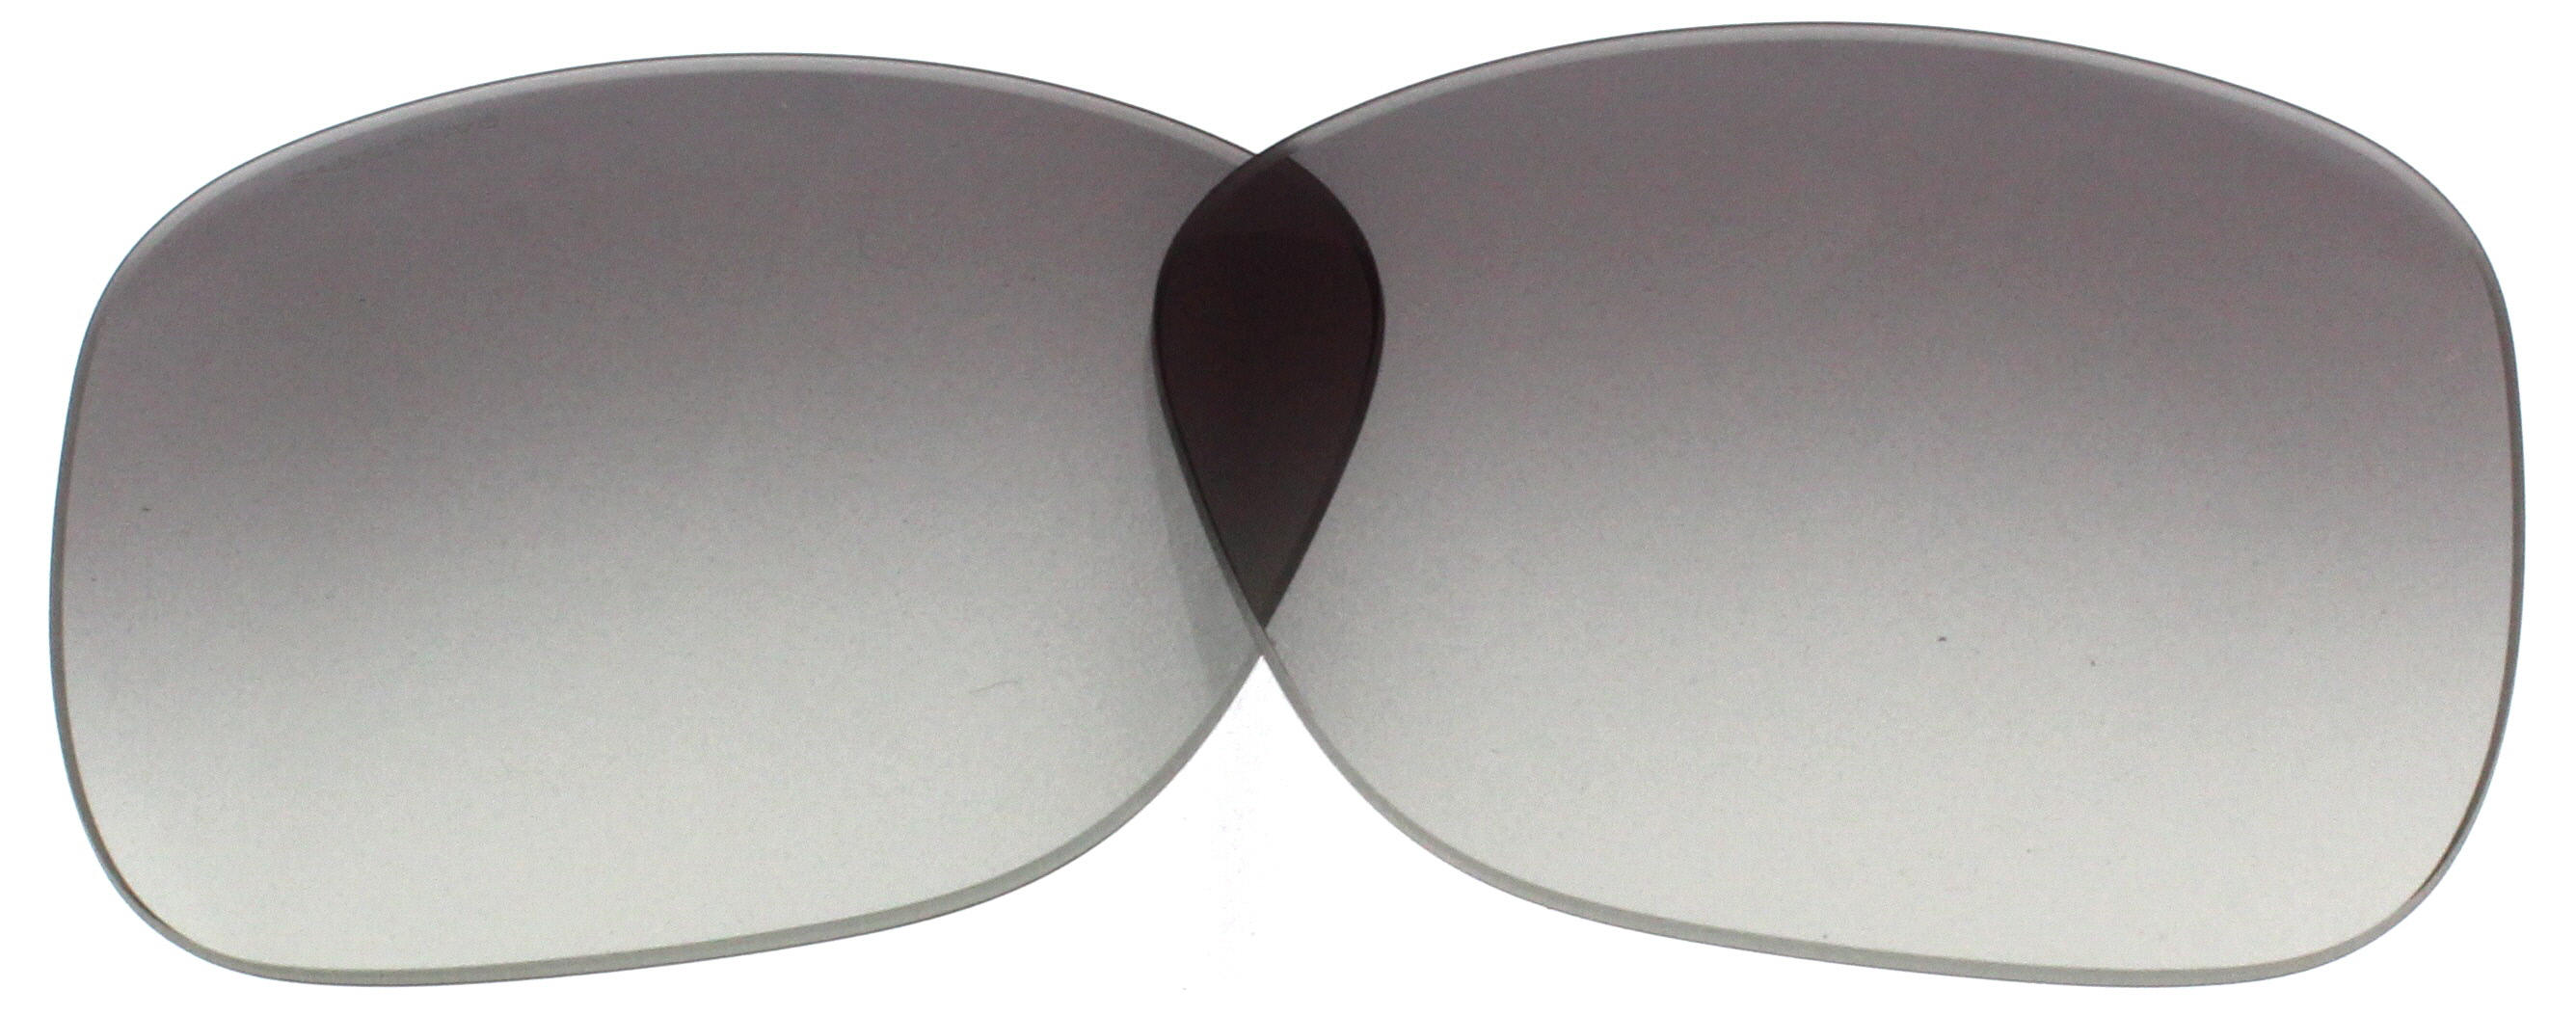 a5890bf9e3 Image is loading VERSACE-Replacement-Lenses-VE4278BA-Gray-Gradient-57MM